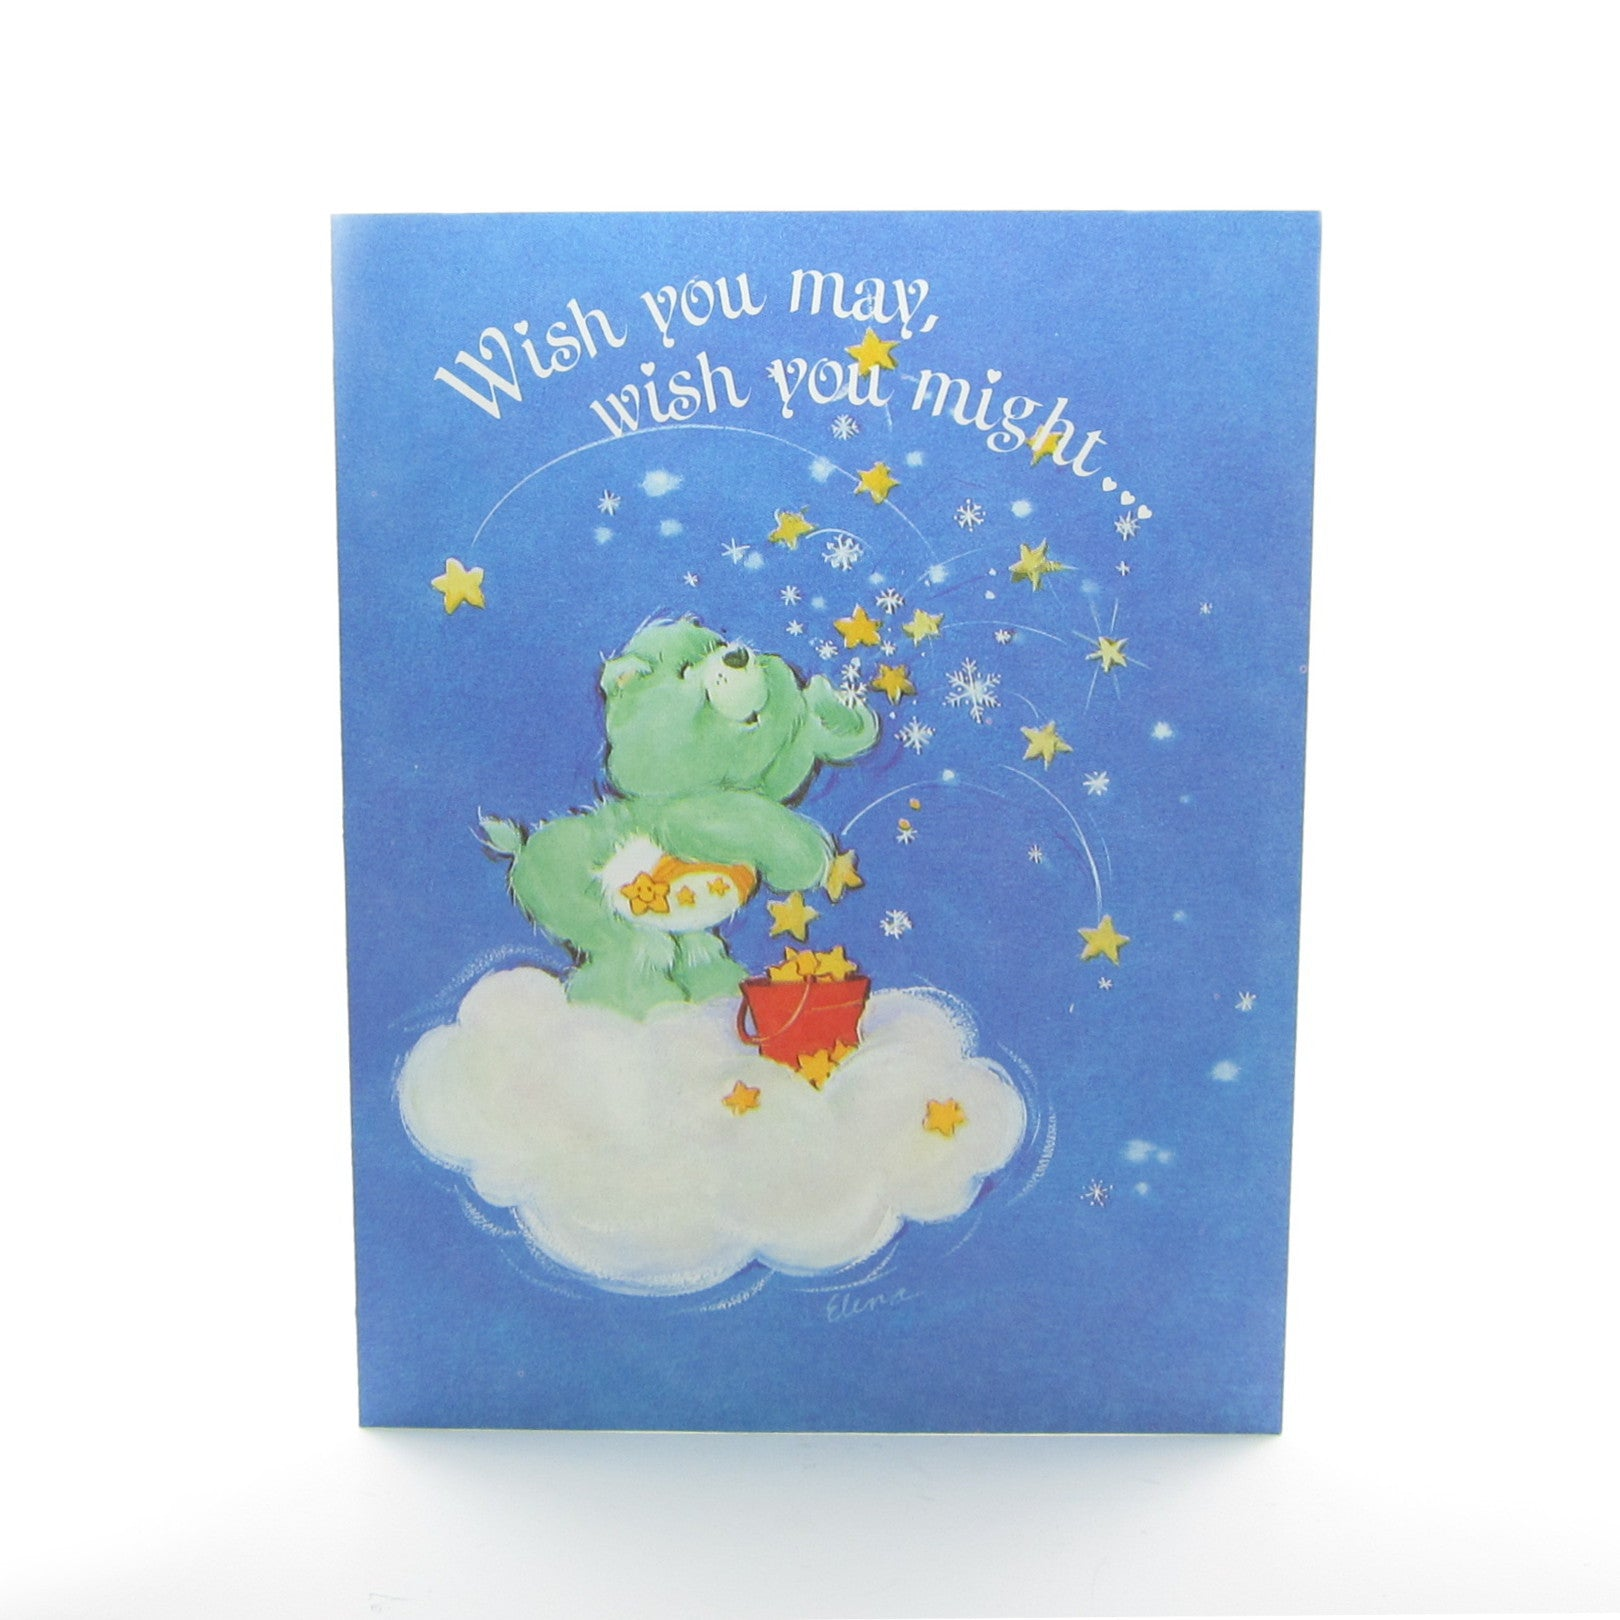 Wish you may, wish you might Care Bears greeting card